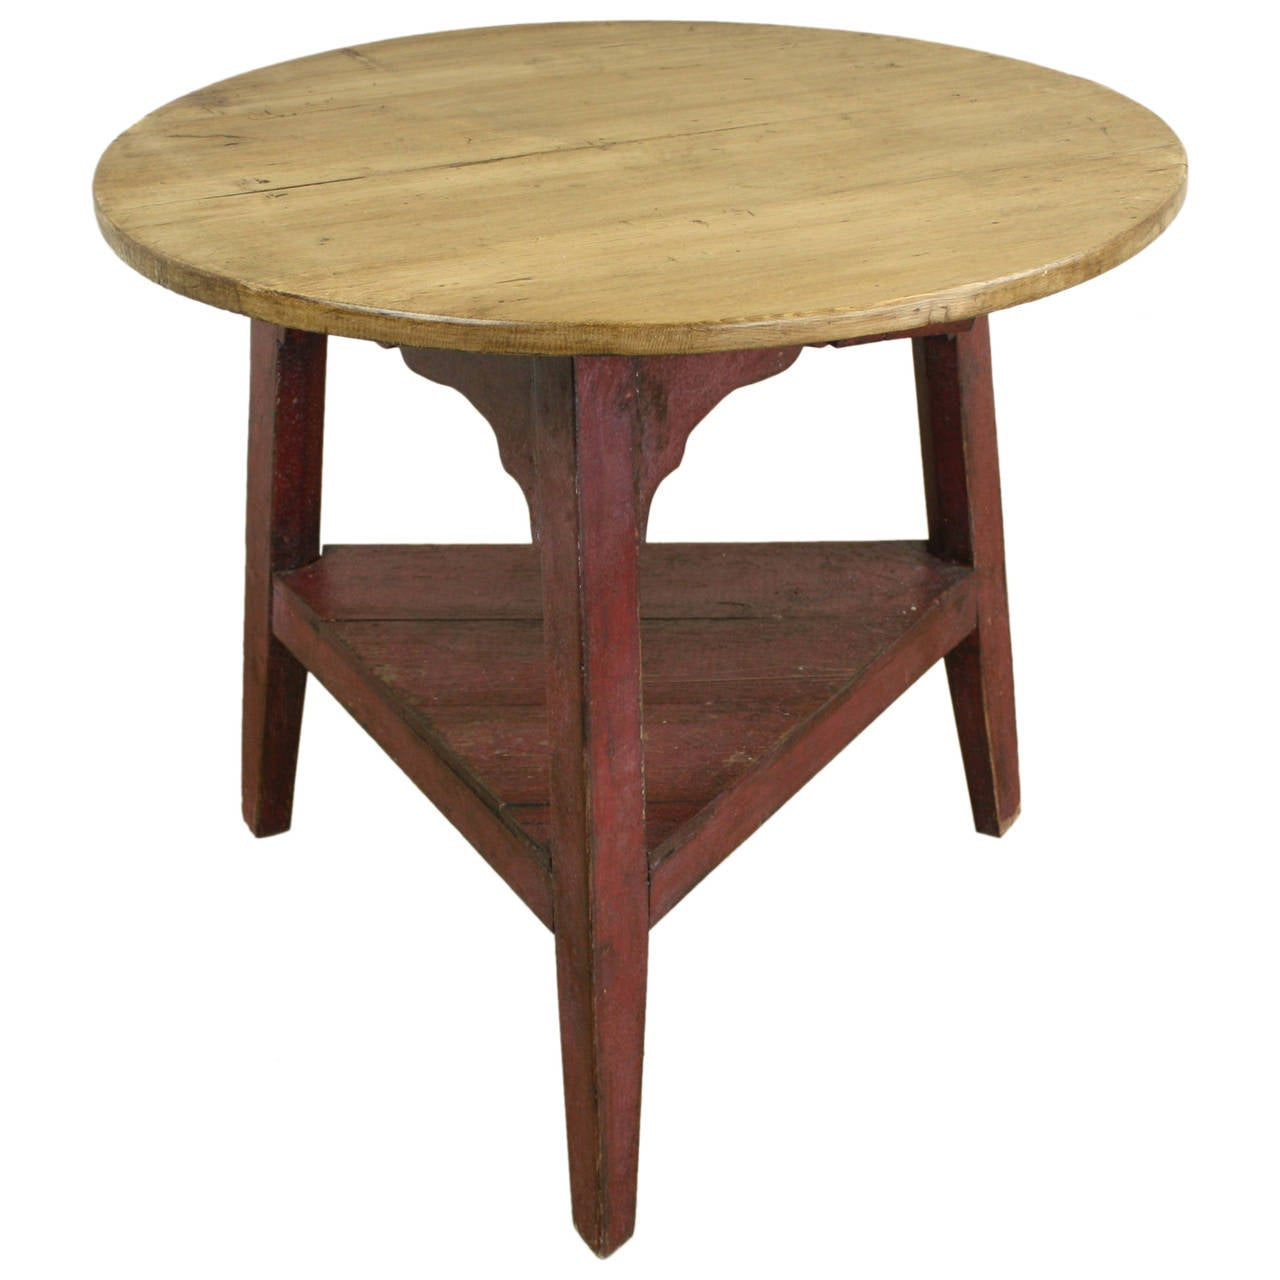 Antique welsh pine cricket table red painted base at 1stdibs antique welsh pine cricket table red painted base 1 geotapseo Images